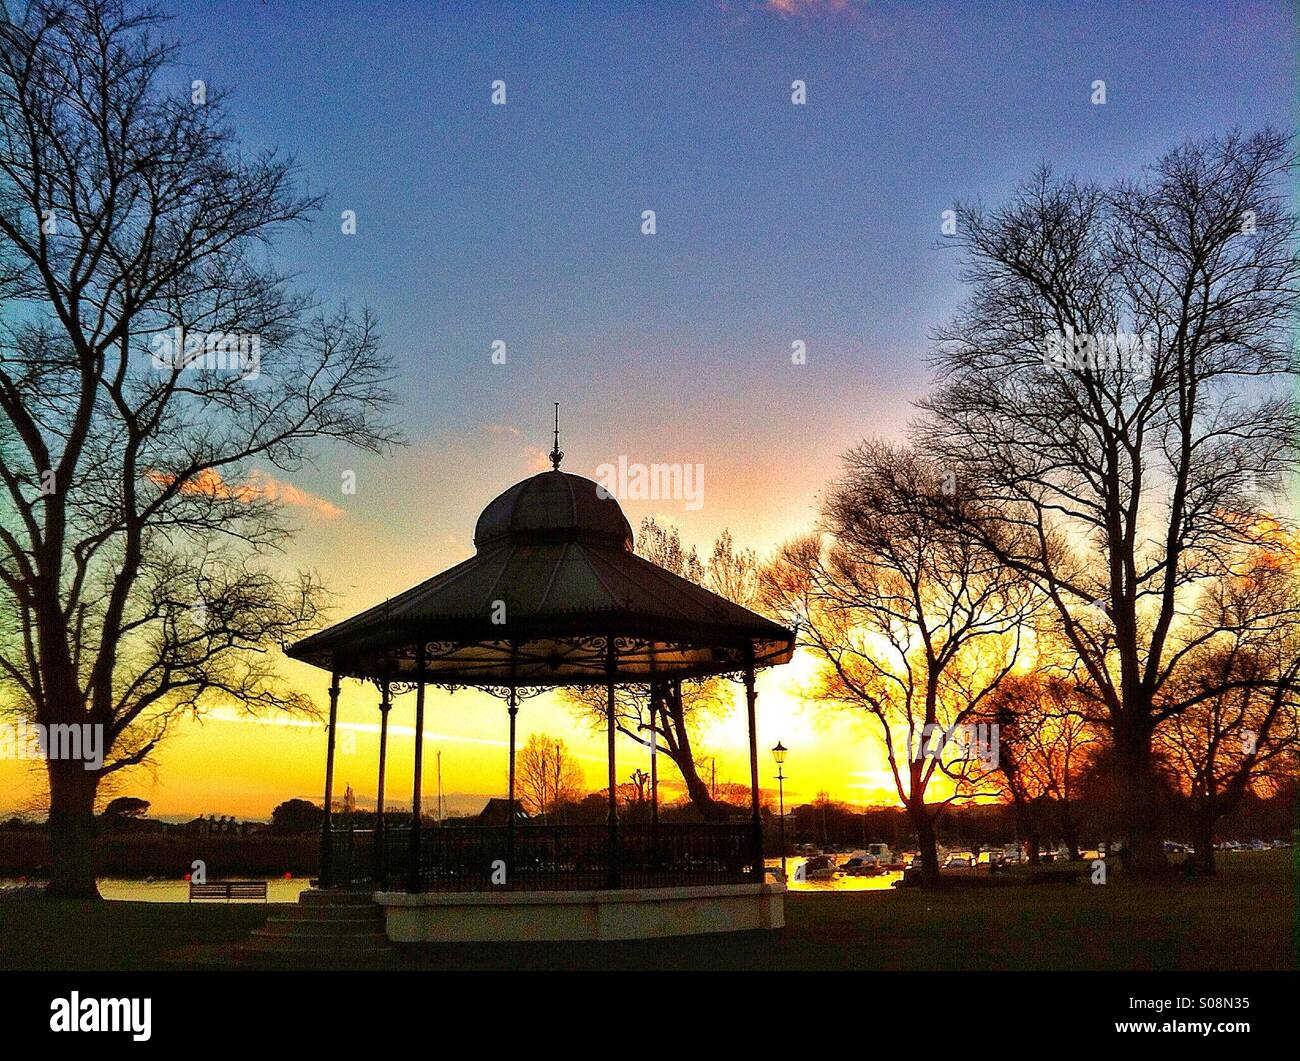 Sunset at the bandstand - Stock Image